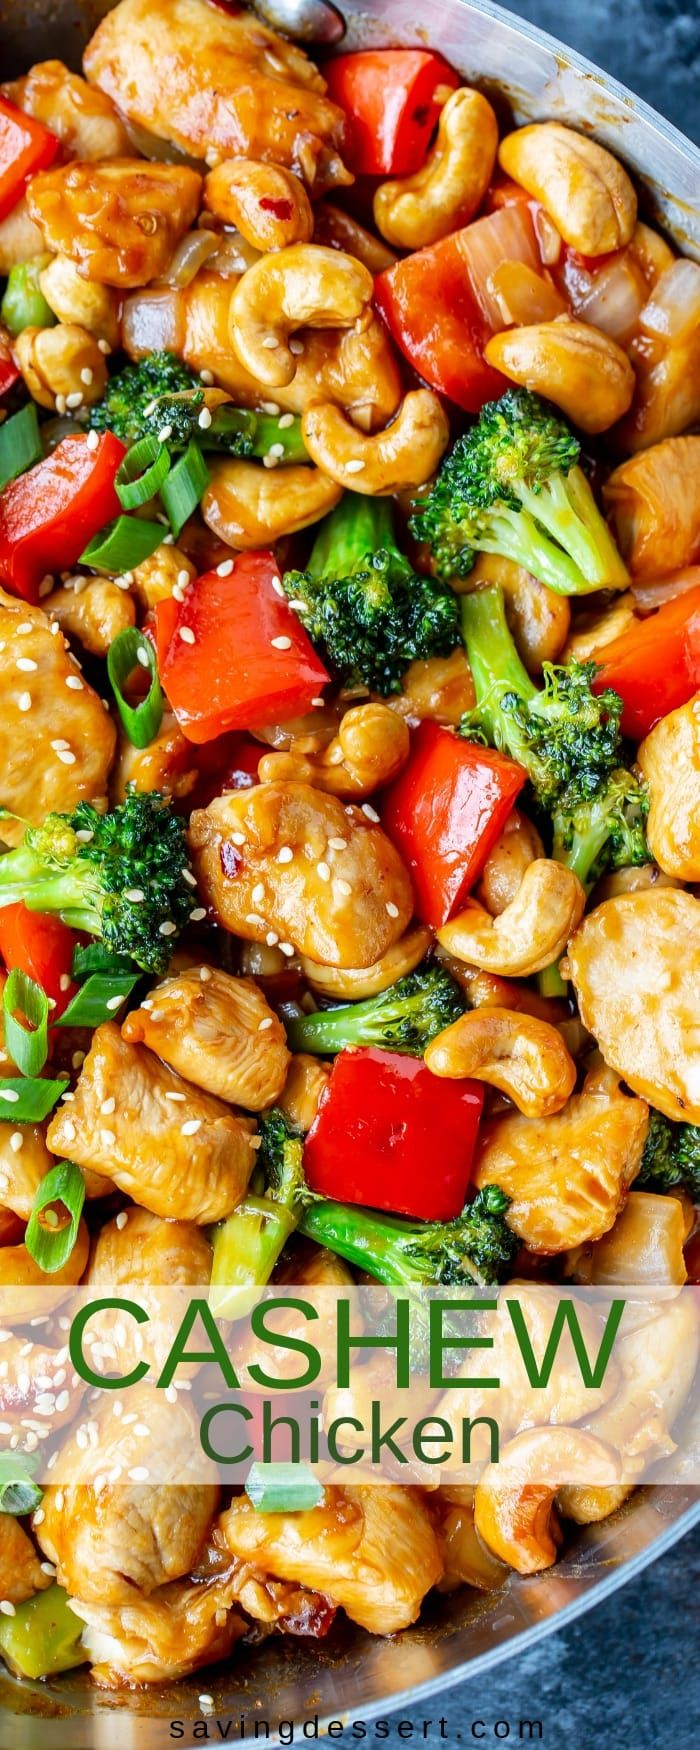 Honey Cashew Chicken Honey Cashew Chicken - You'll love the sweet heat of this Asian inspired stir-fry loaded with tender chunks of chicken, red bell pepper, onions & tender broccoli.